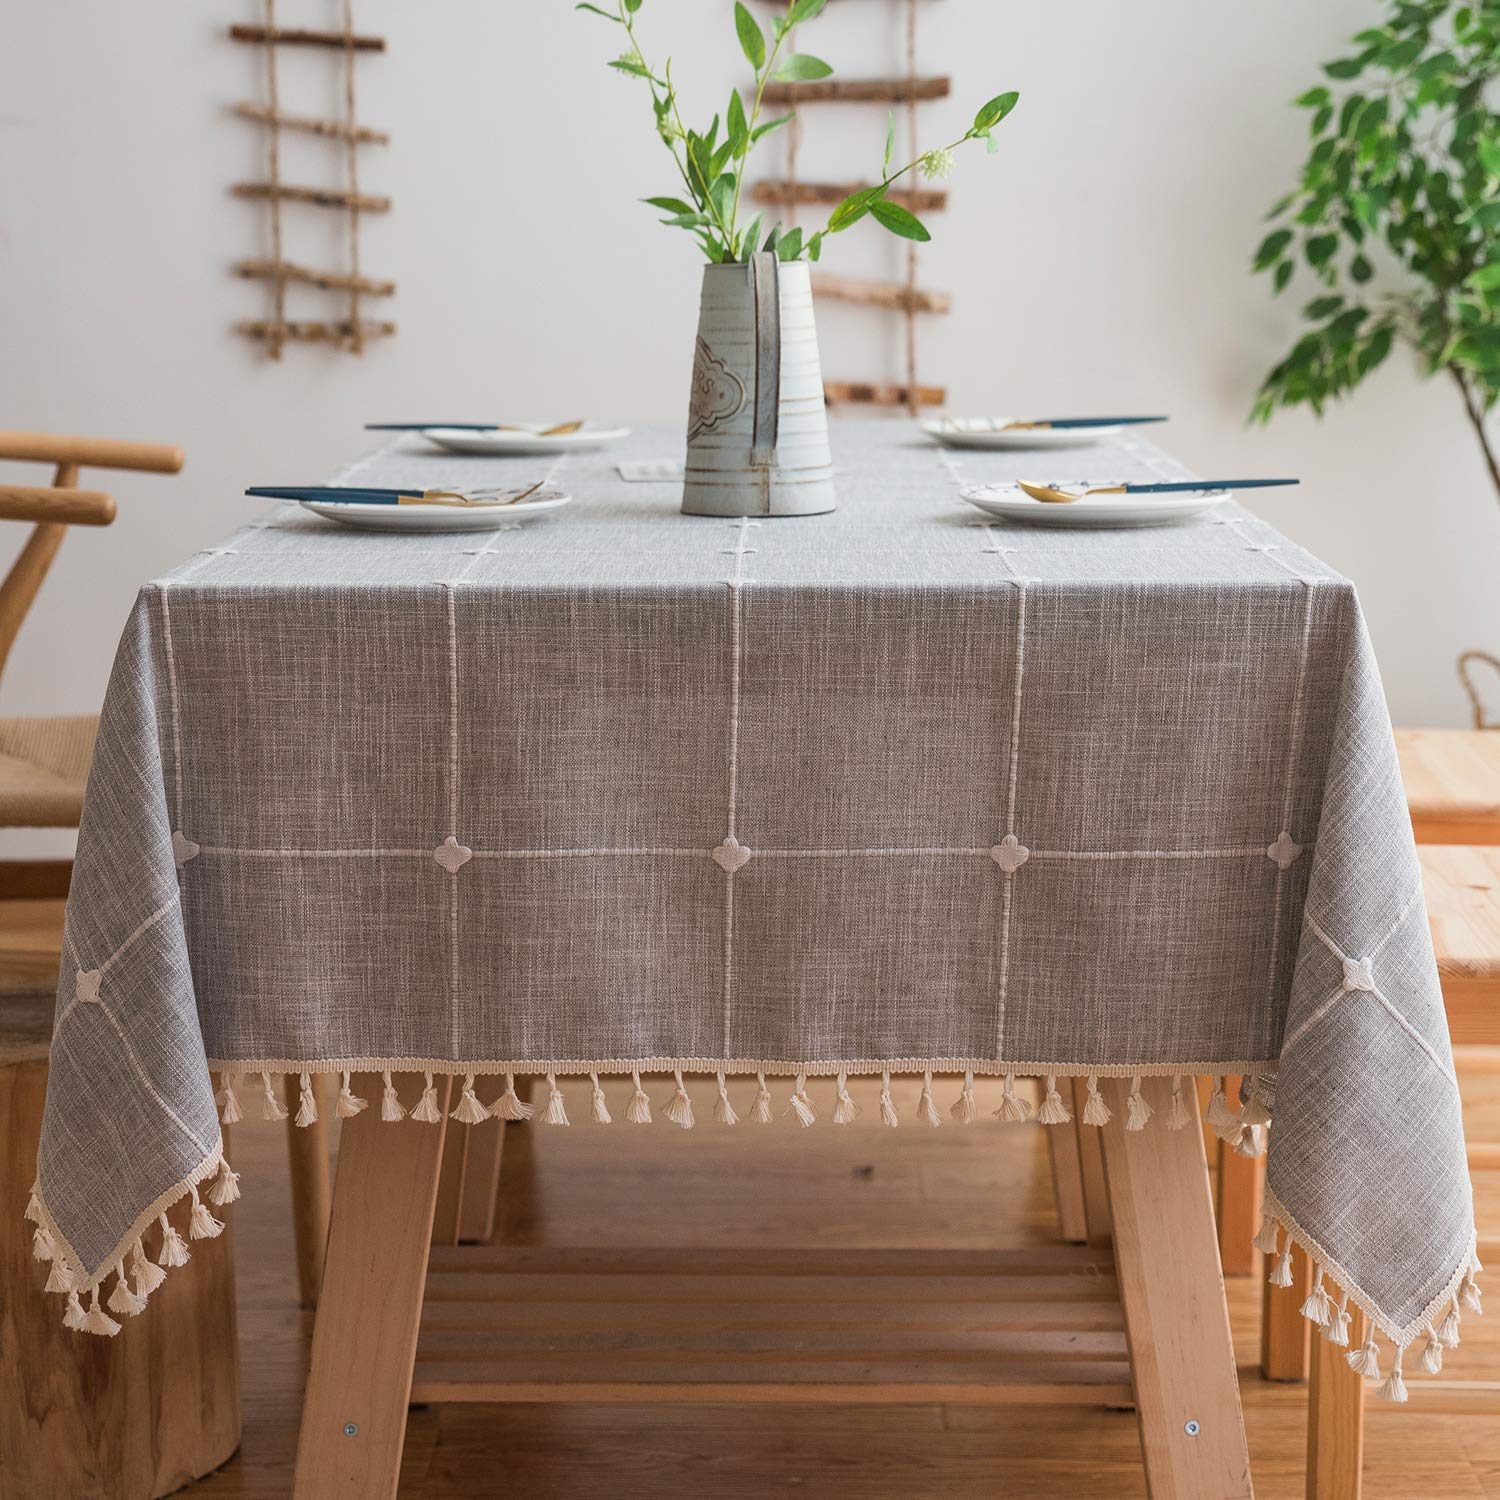 Mokani Washable Cotton Linen Solid Embroidery Lattice Design Tablecloth, Rectangle Table Cover Great for Kitchen Dinning Tabletop Buffet Decoration (55 x 86 Inch, Gray)